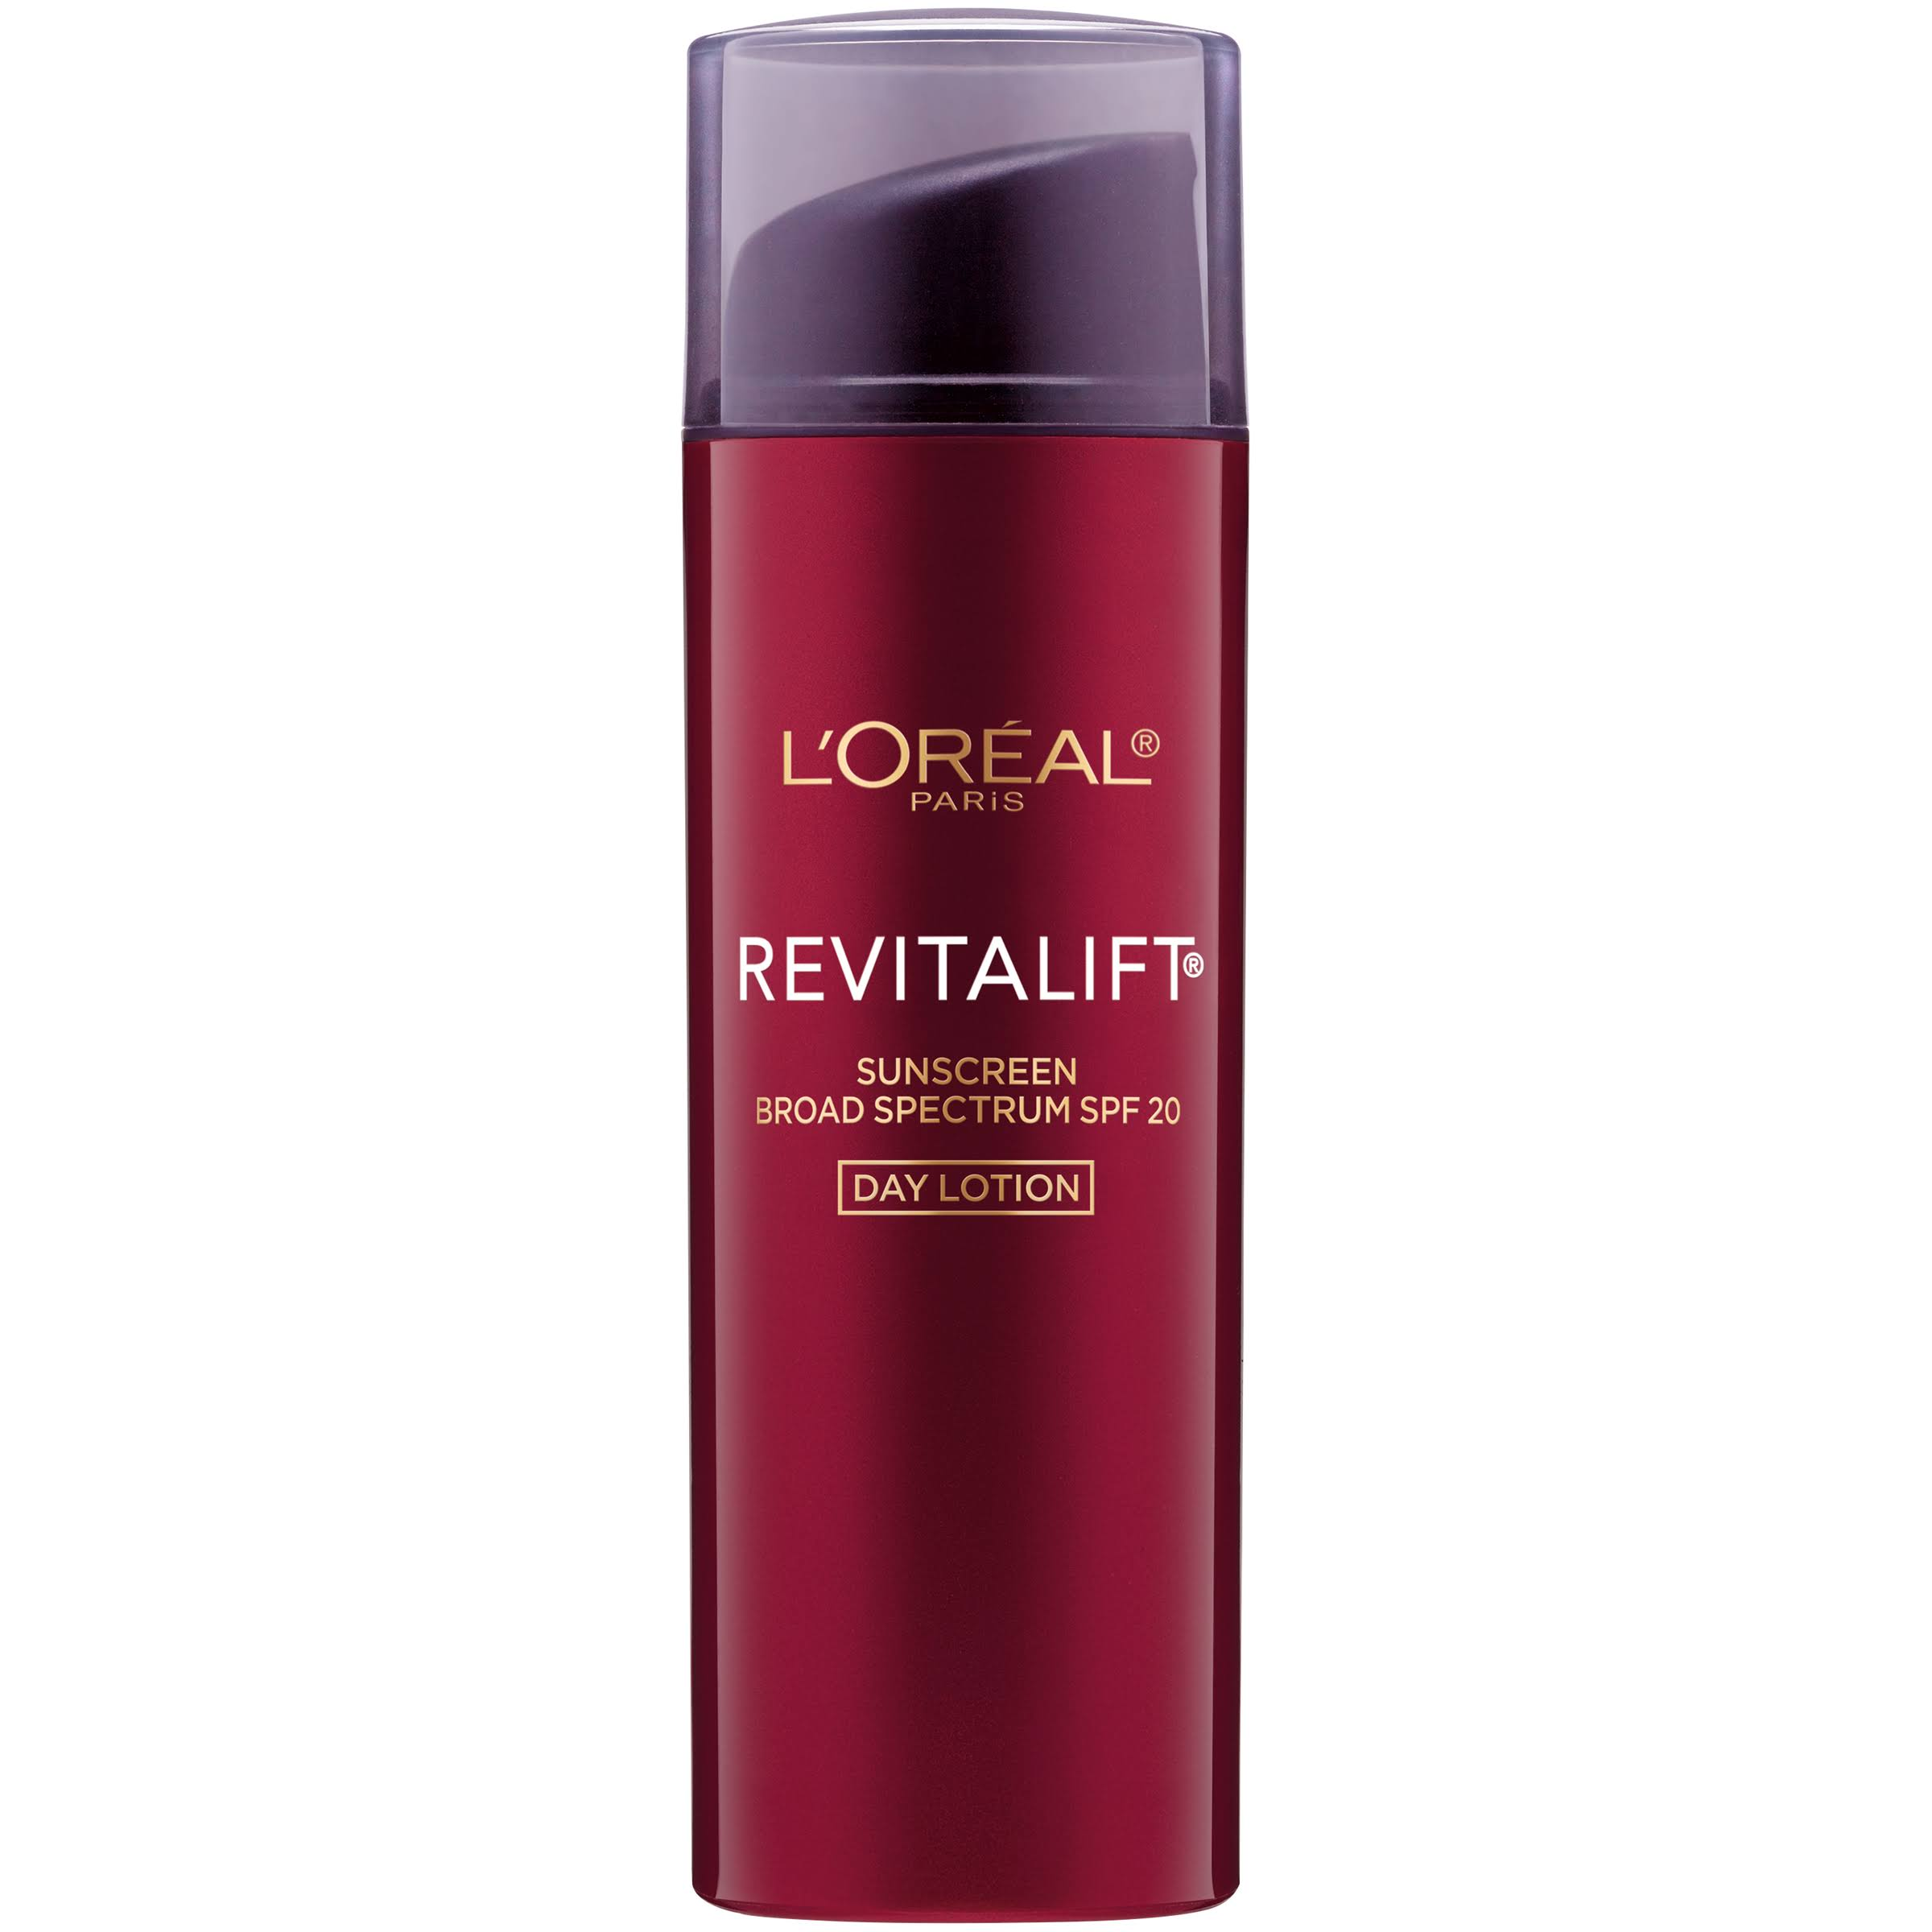 Loreal Paris Revitalift Triple Power Day Lotion - SPF 20, 1.7oz